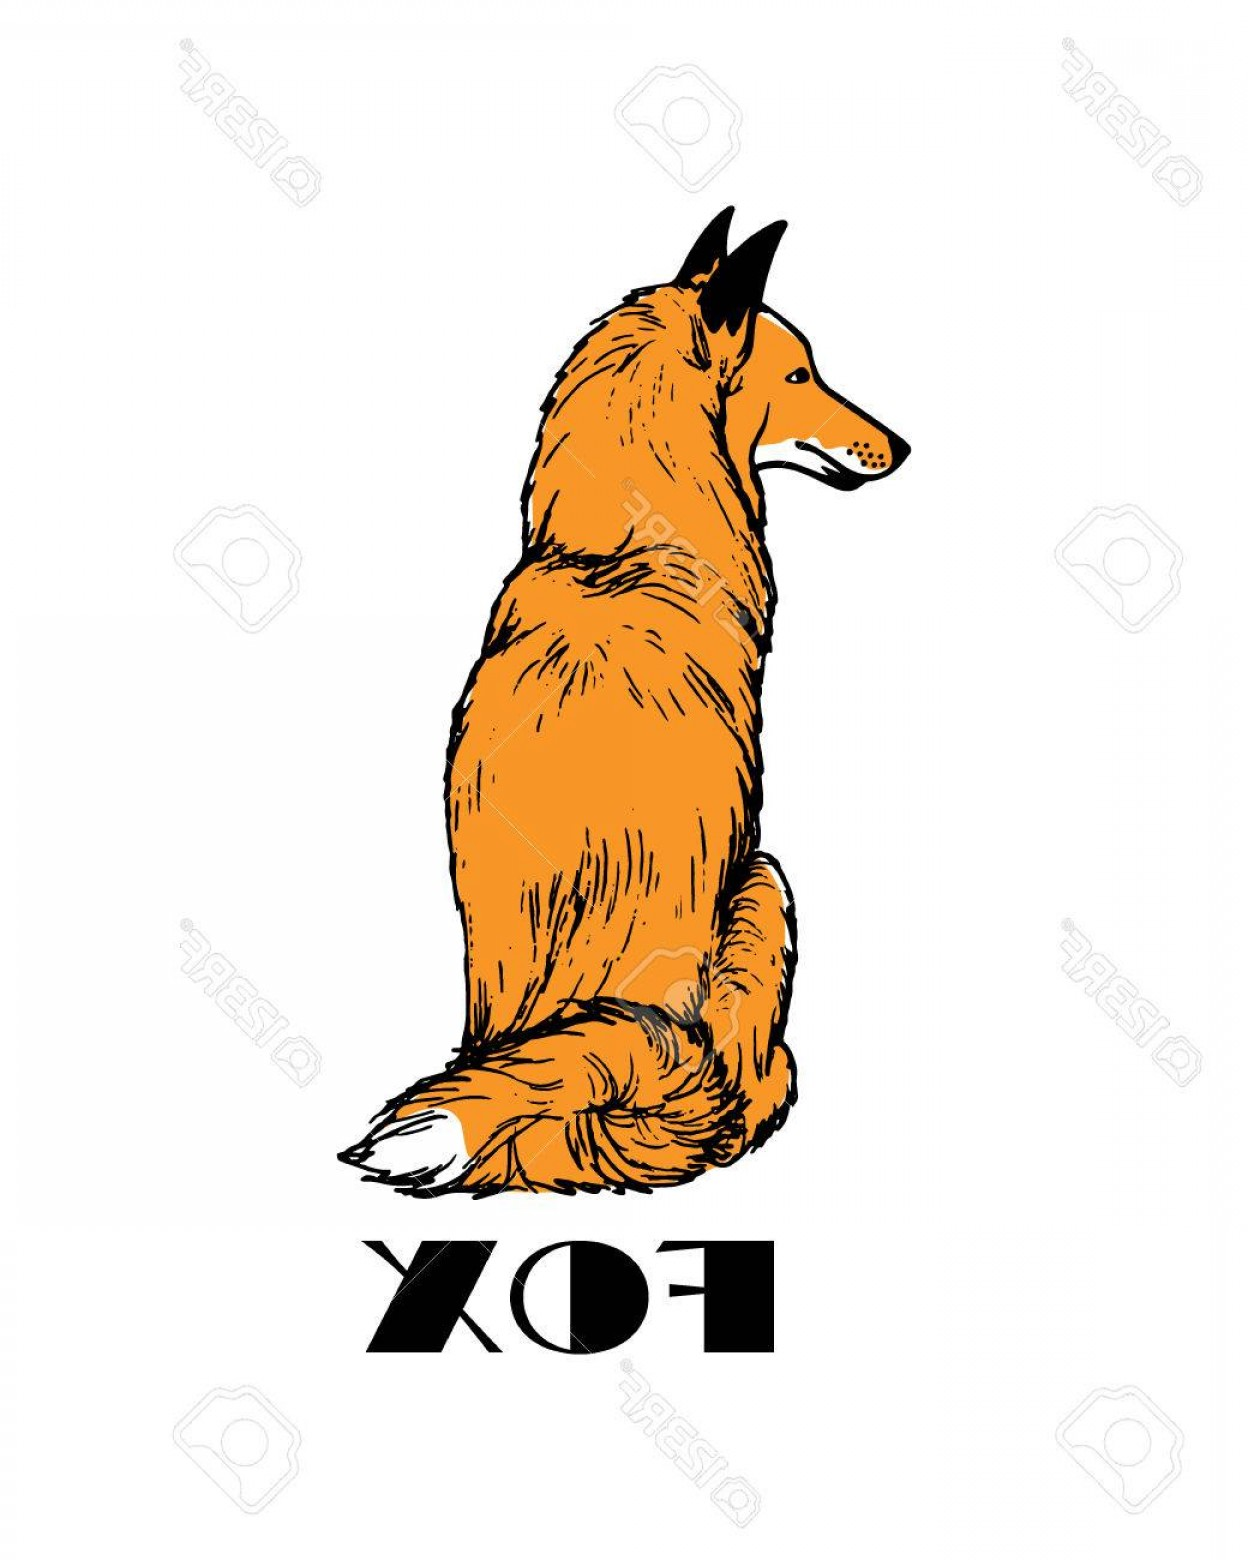 Sitting Fox Logo Vector: Photostock Vector Vector Card With Hand Drawn Sitting Fox Made With Pen And Ink Back View Realistic Animal Illustratio